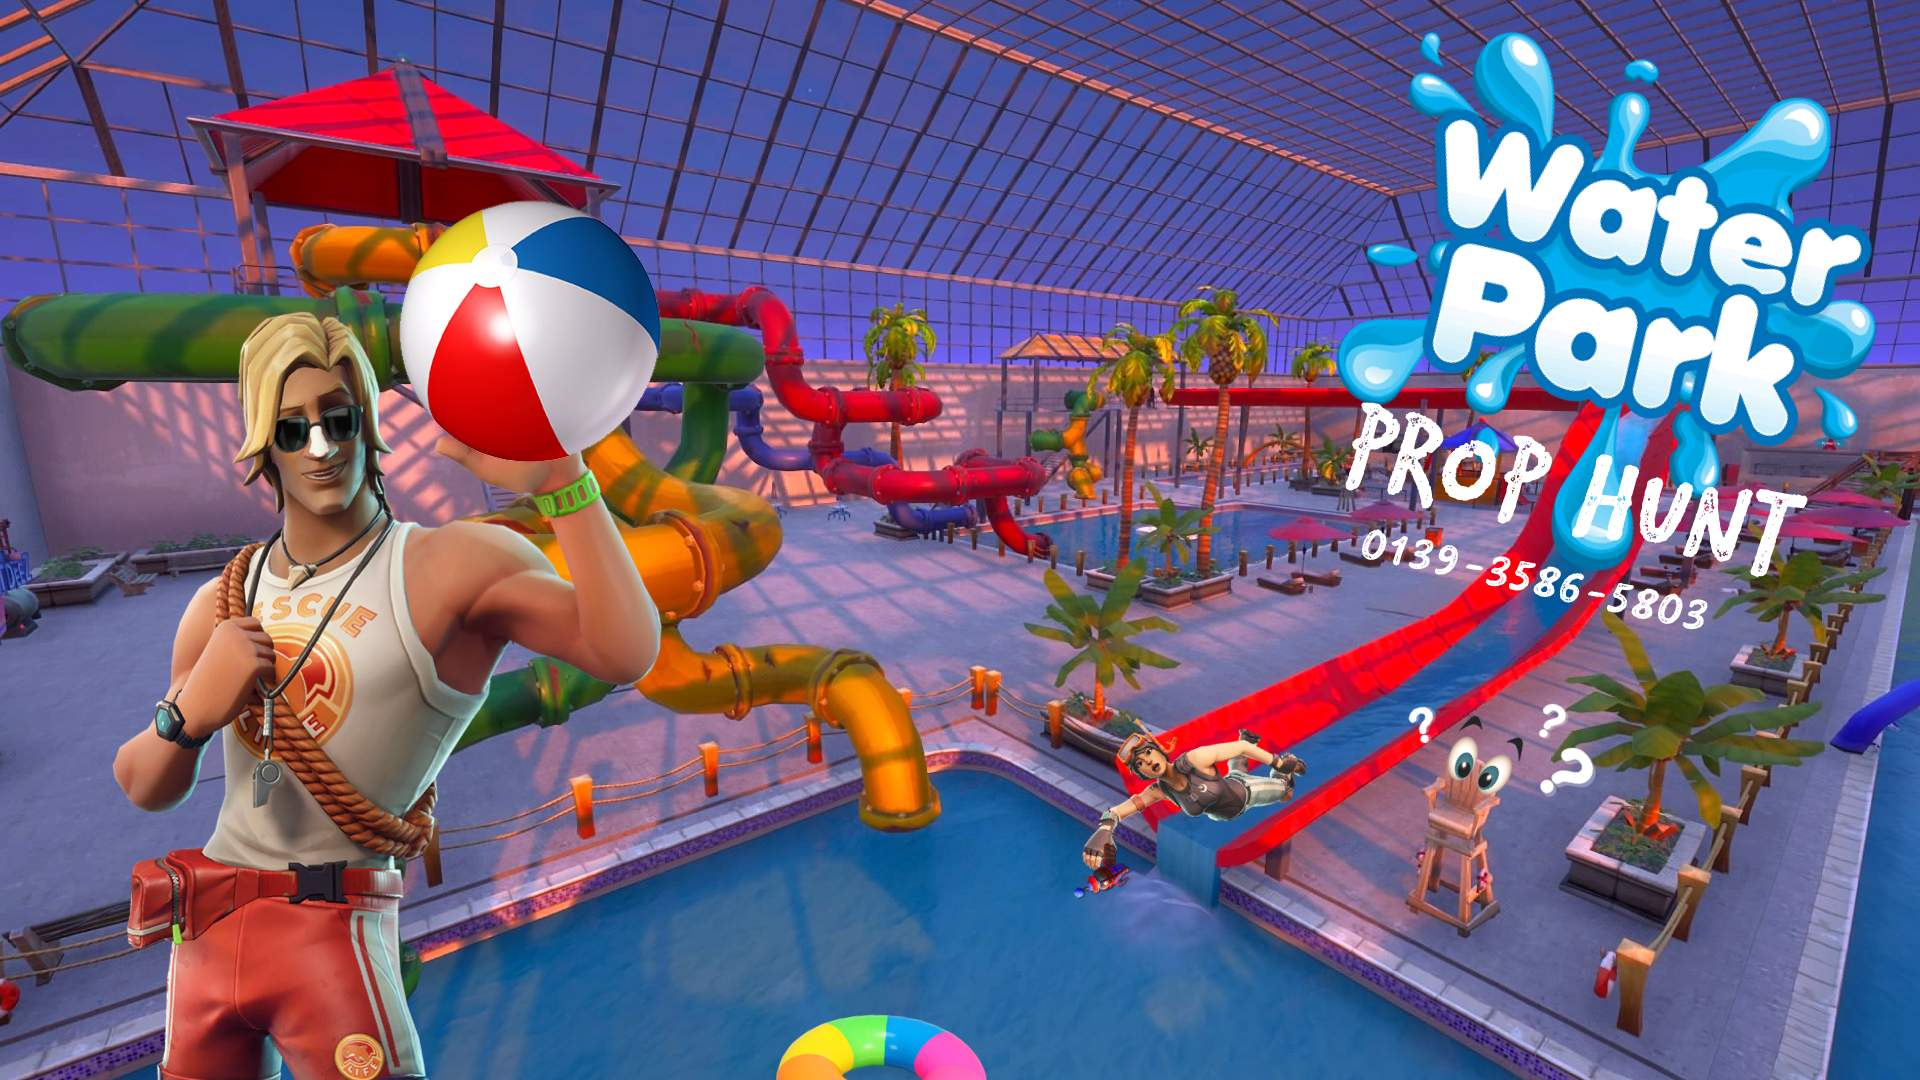 INDOOR WATER PARK PROP HUNT